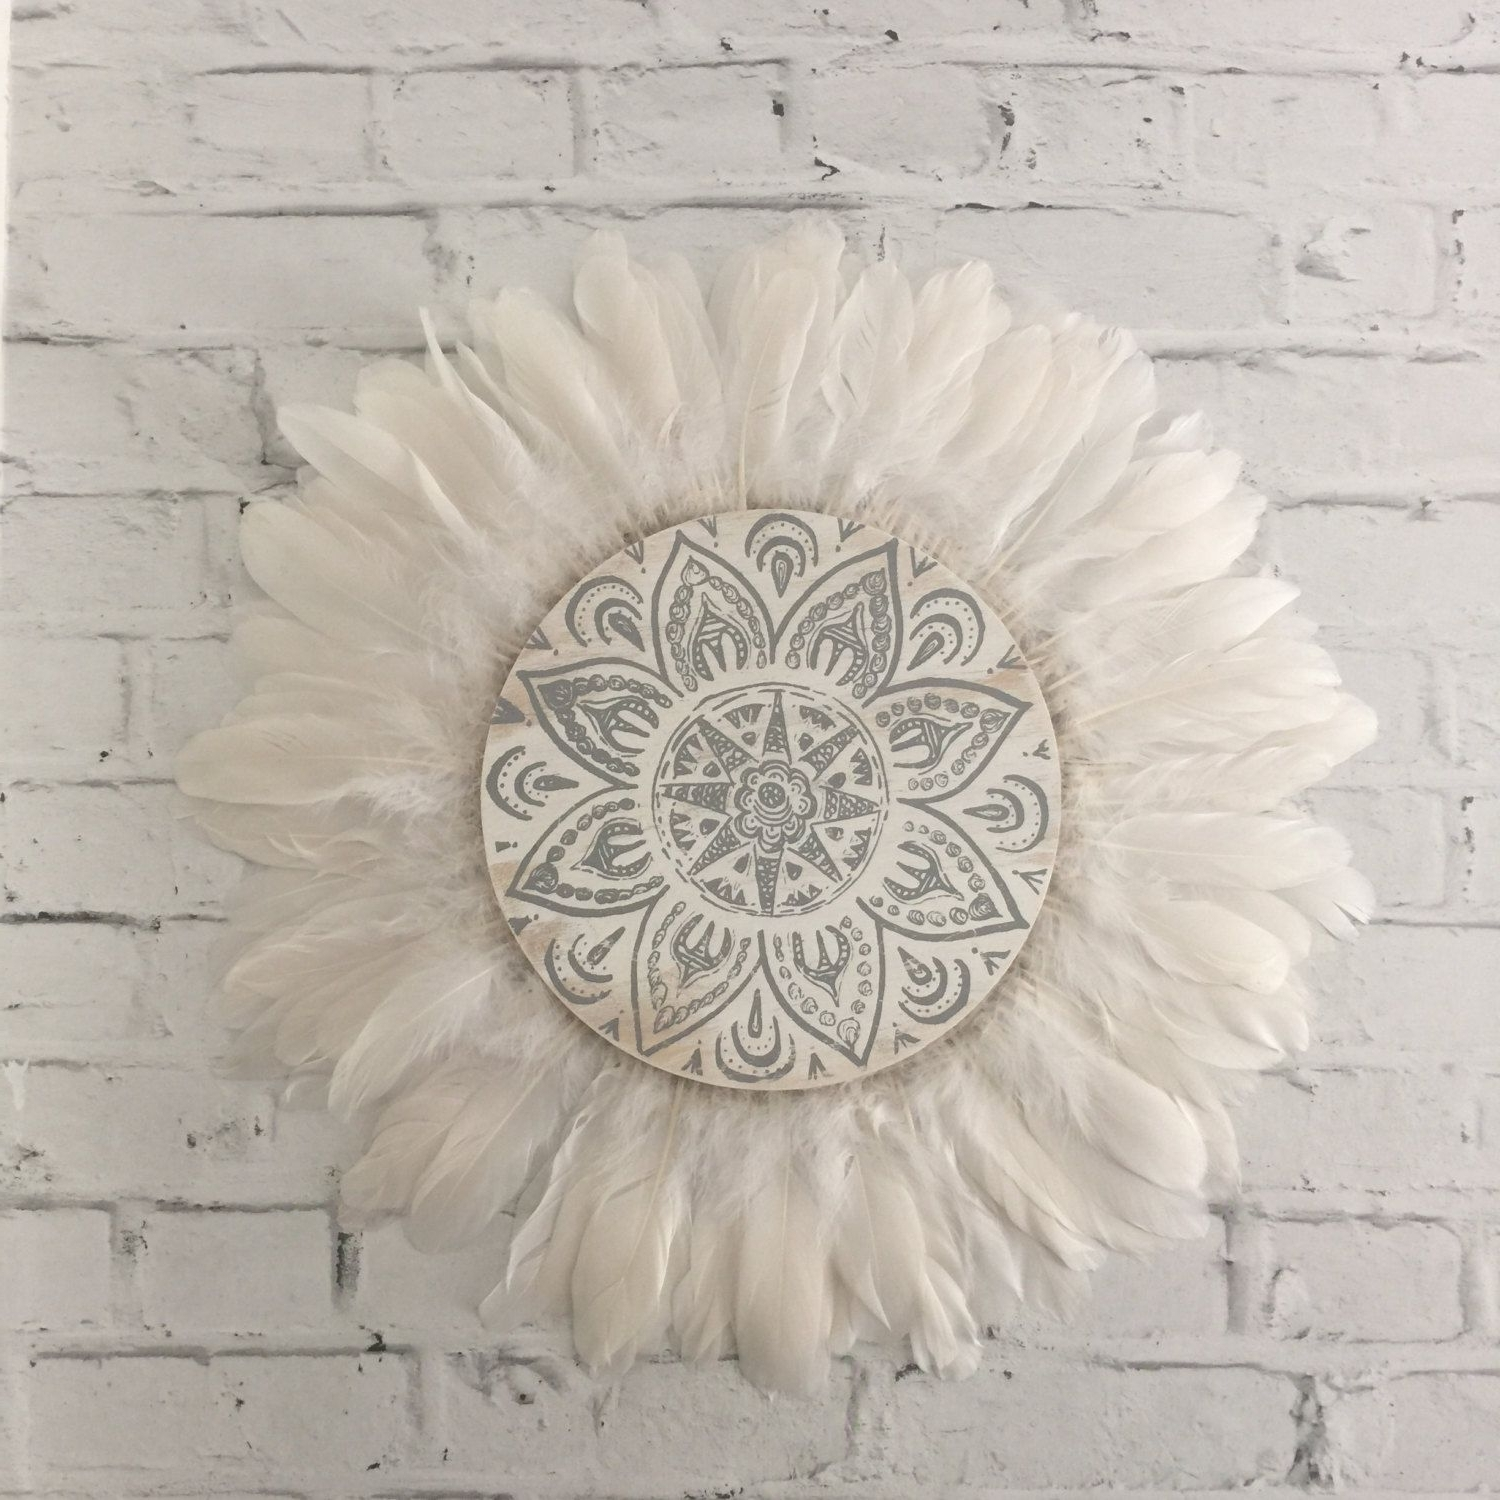 Tribal Mandala White And Grey Feathers Round Wall Art, Boho Design In Fashionable Round Wall Art (View 13 of 15)